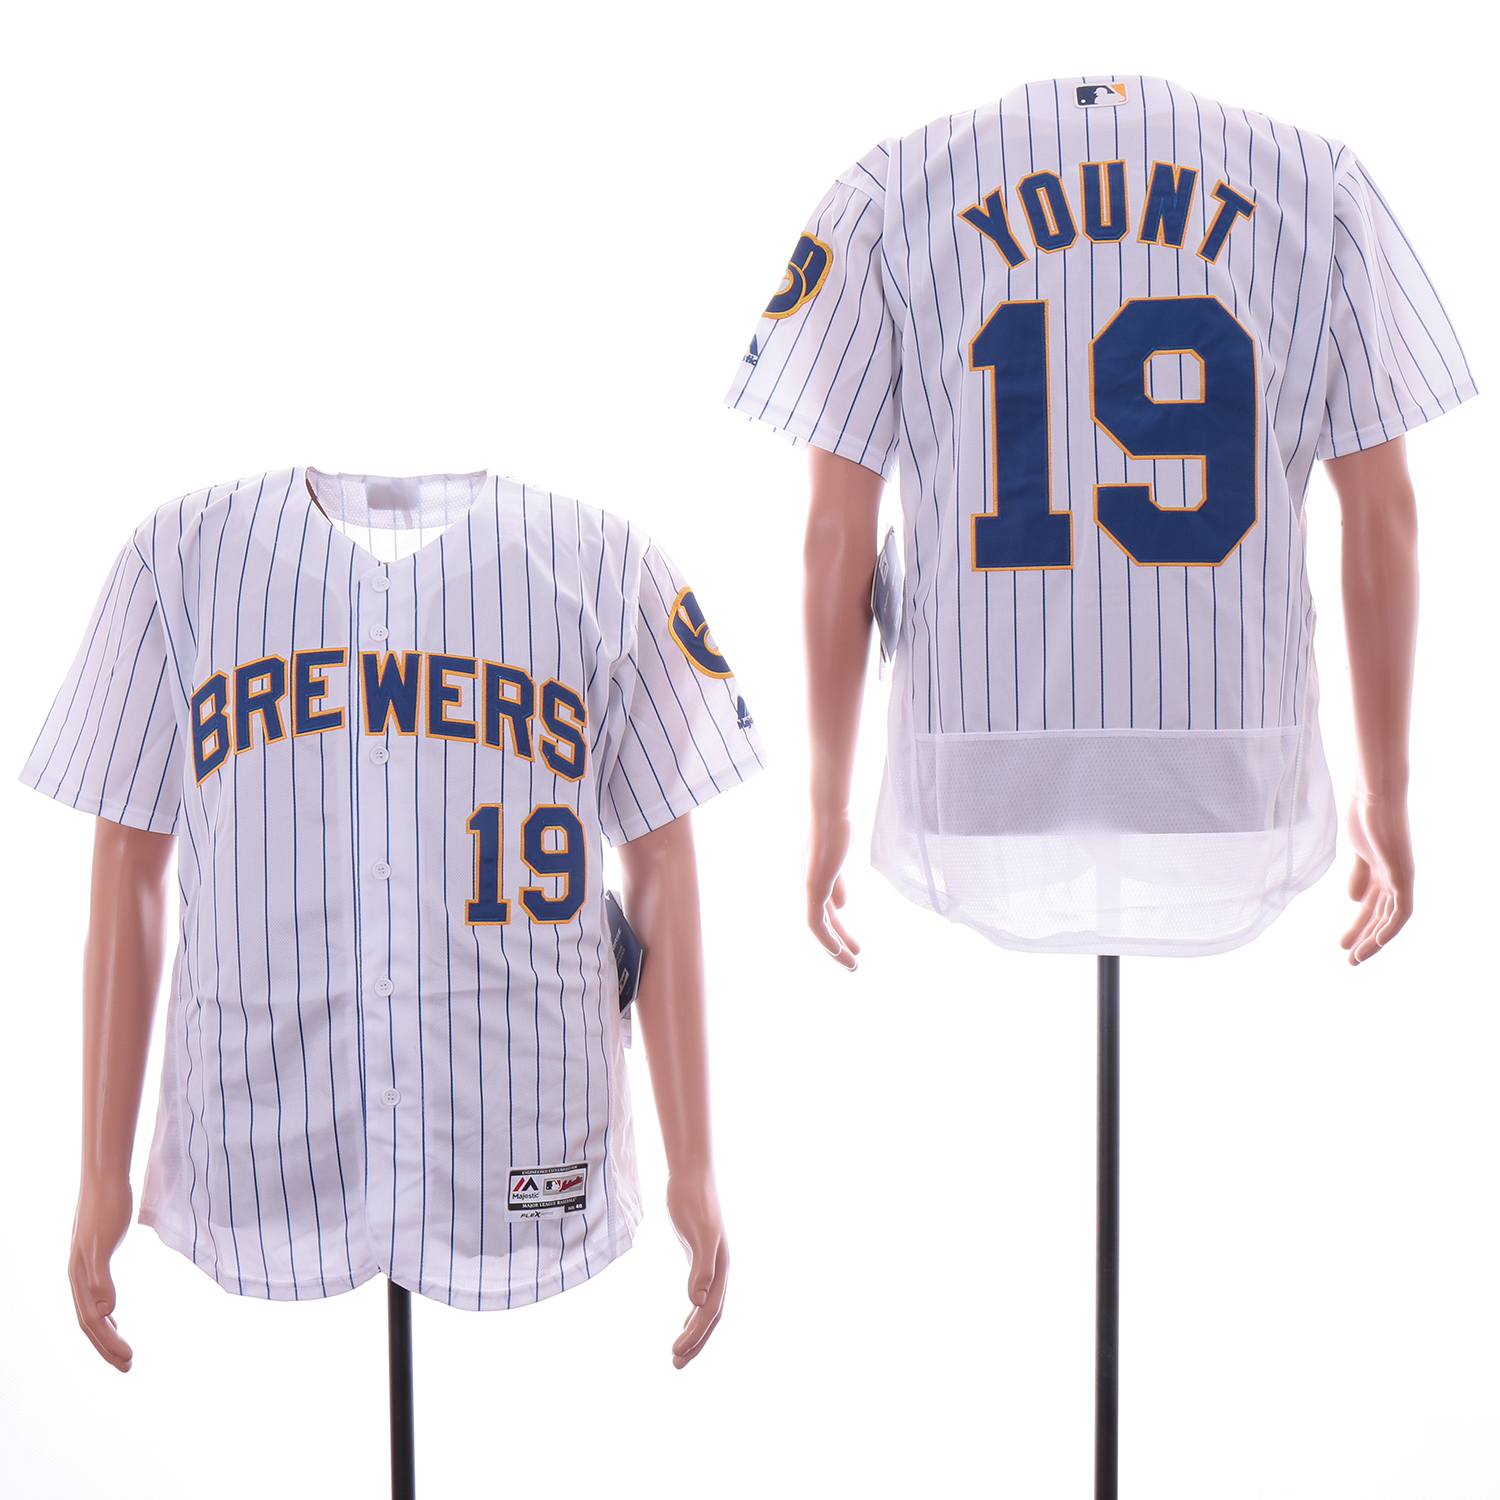 Brewers 19 Robin Yount White Flexbase Jersey